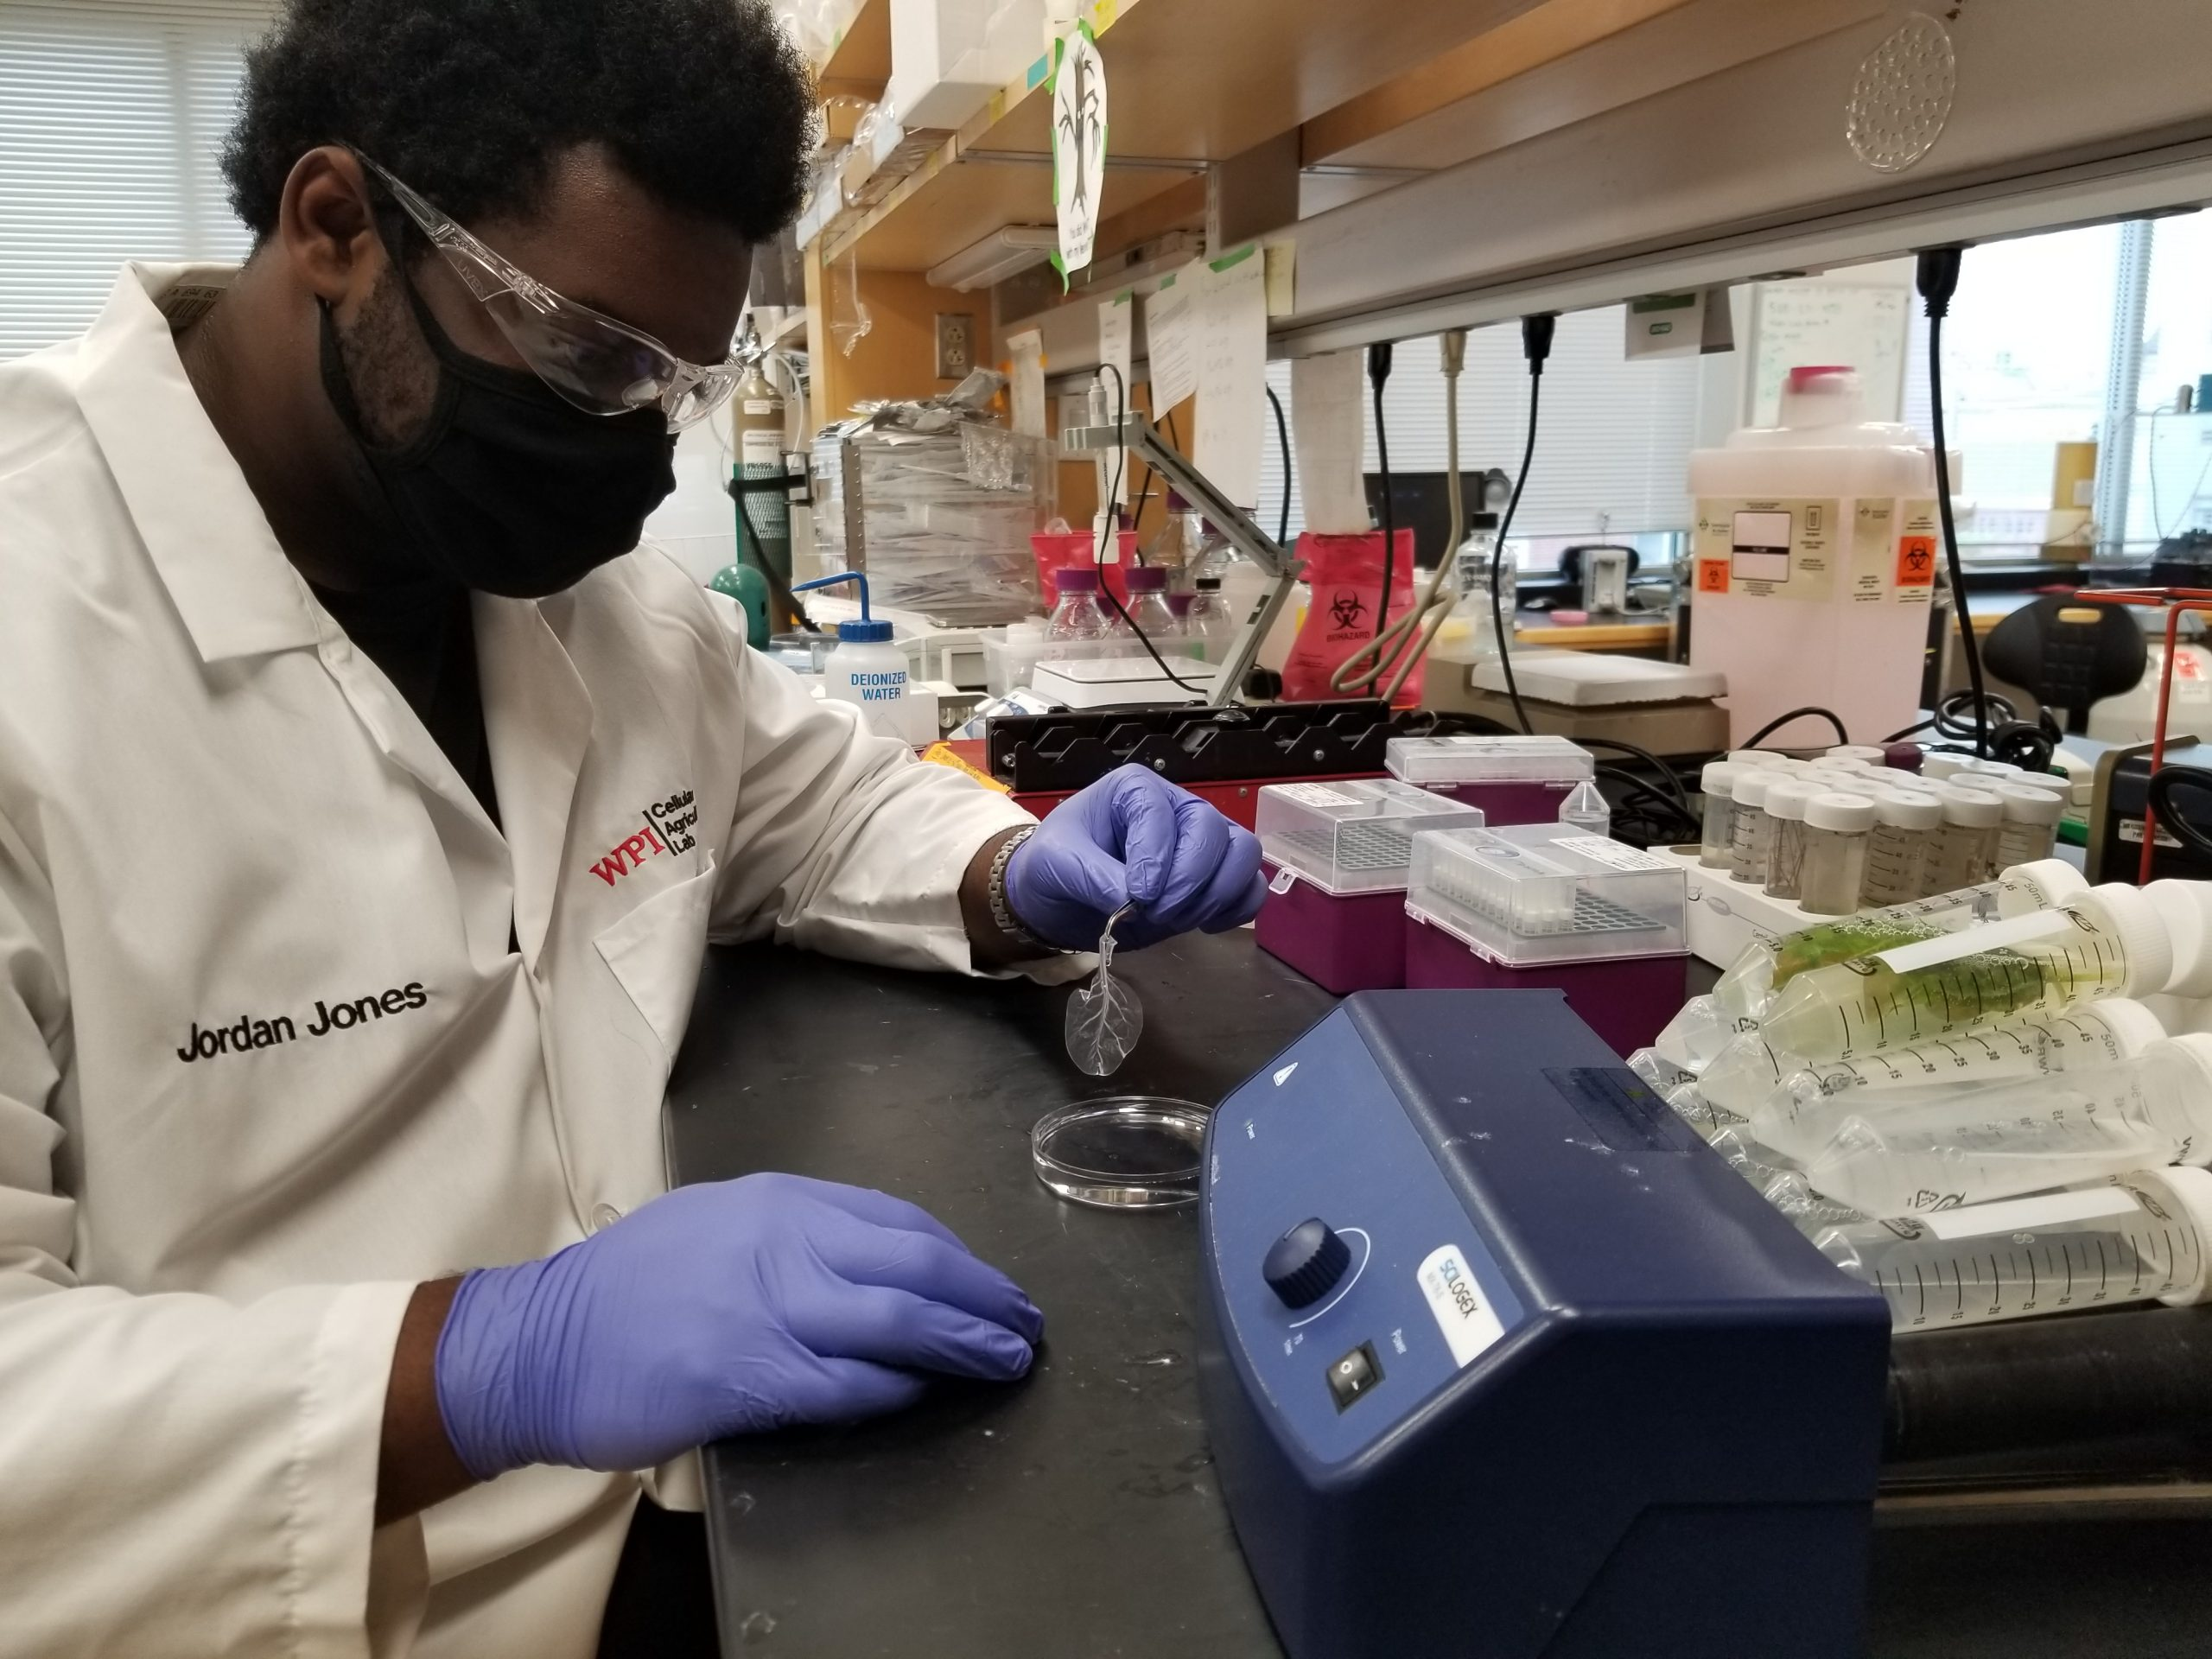 Jordan in the lab, holding a decellularized spinach leaf on which he will grow beef cells.